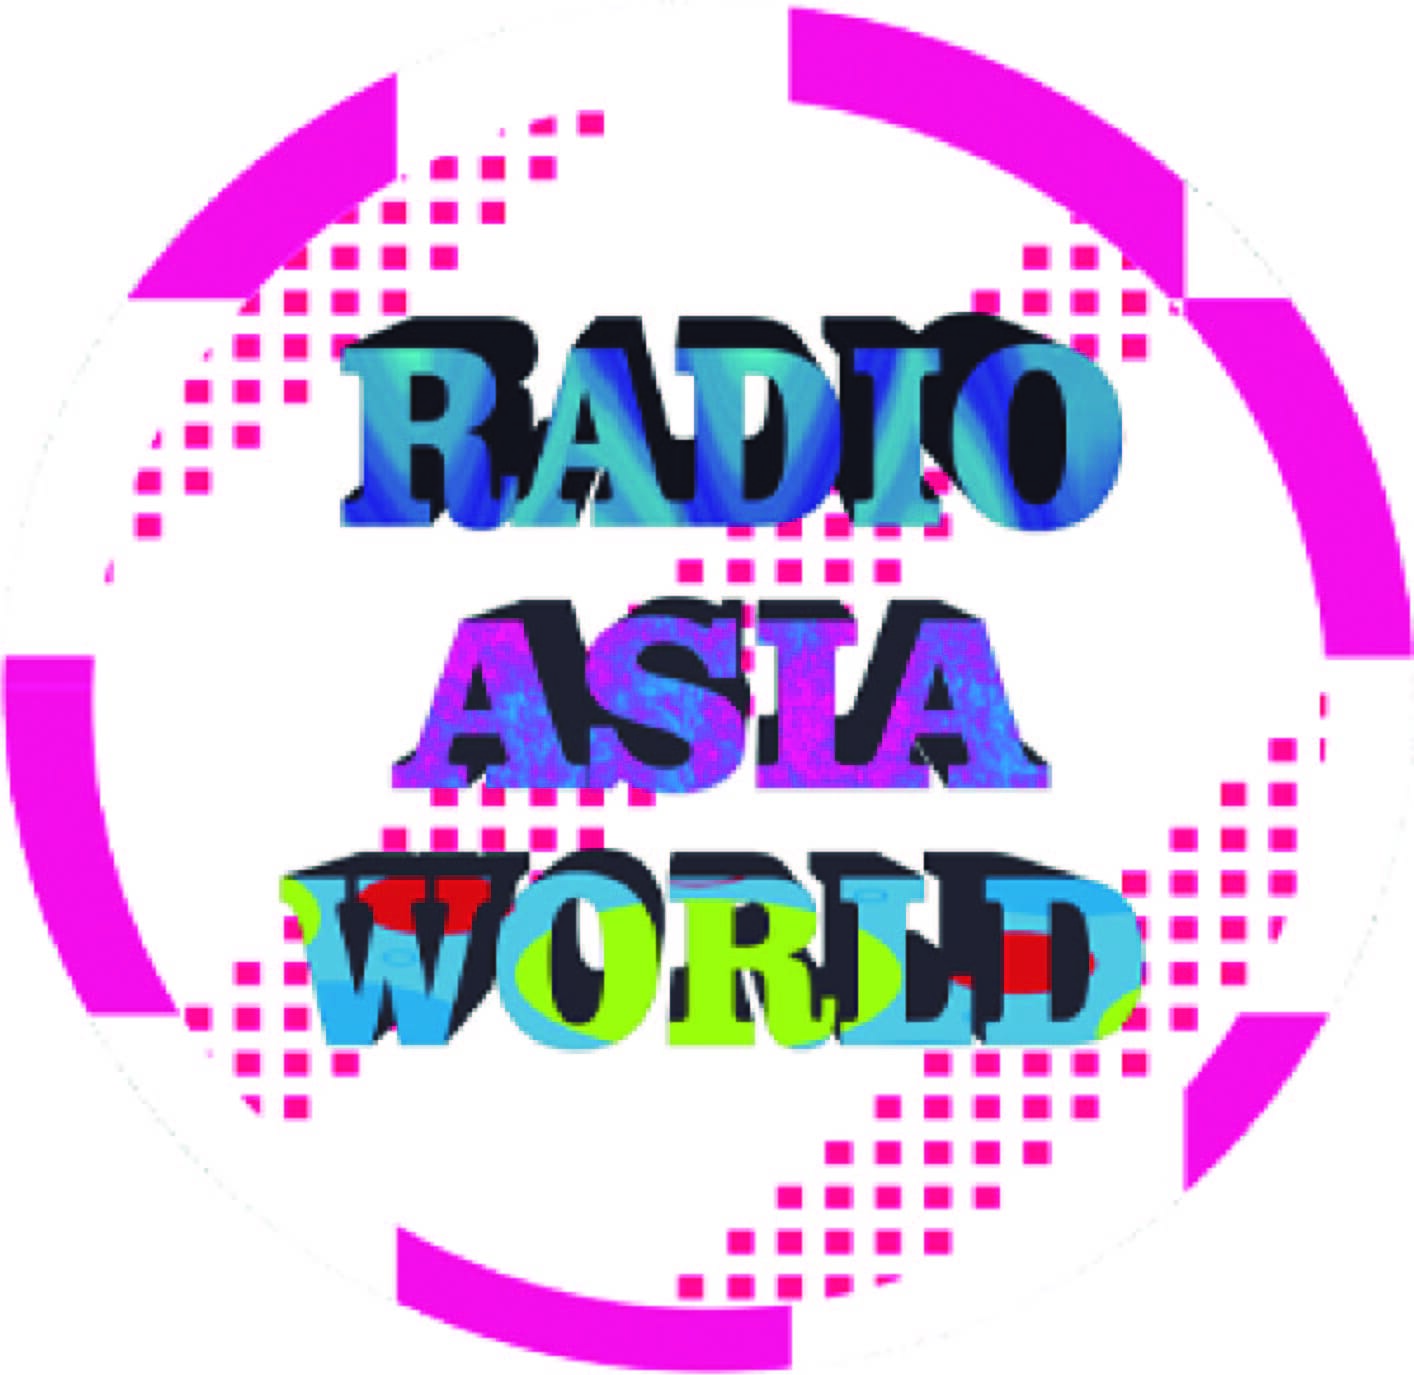 Ecouter Asia World Radio